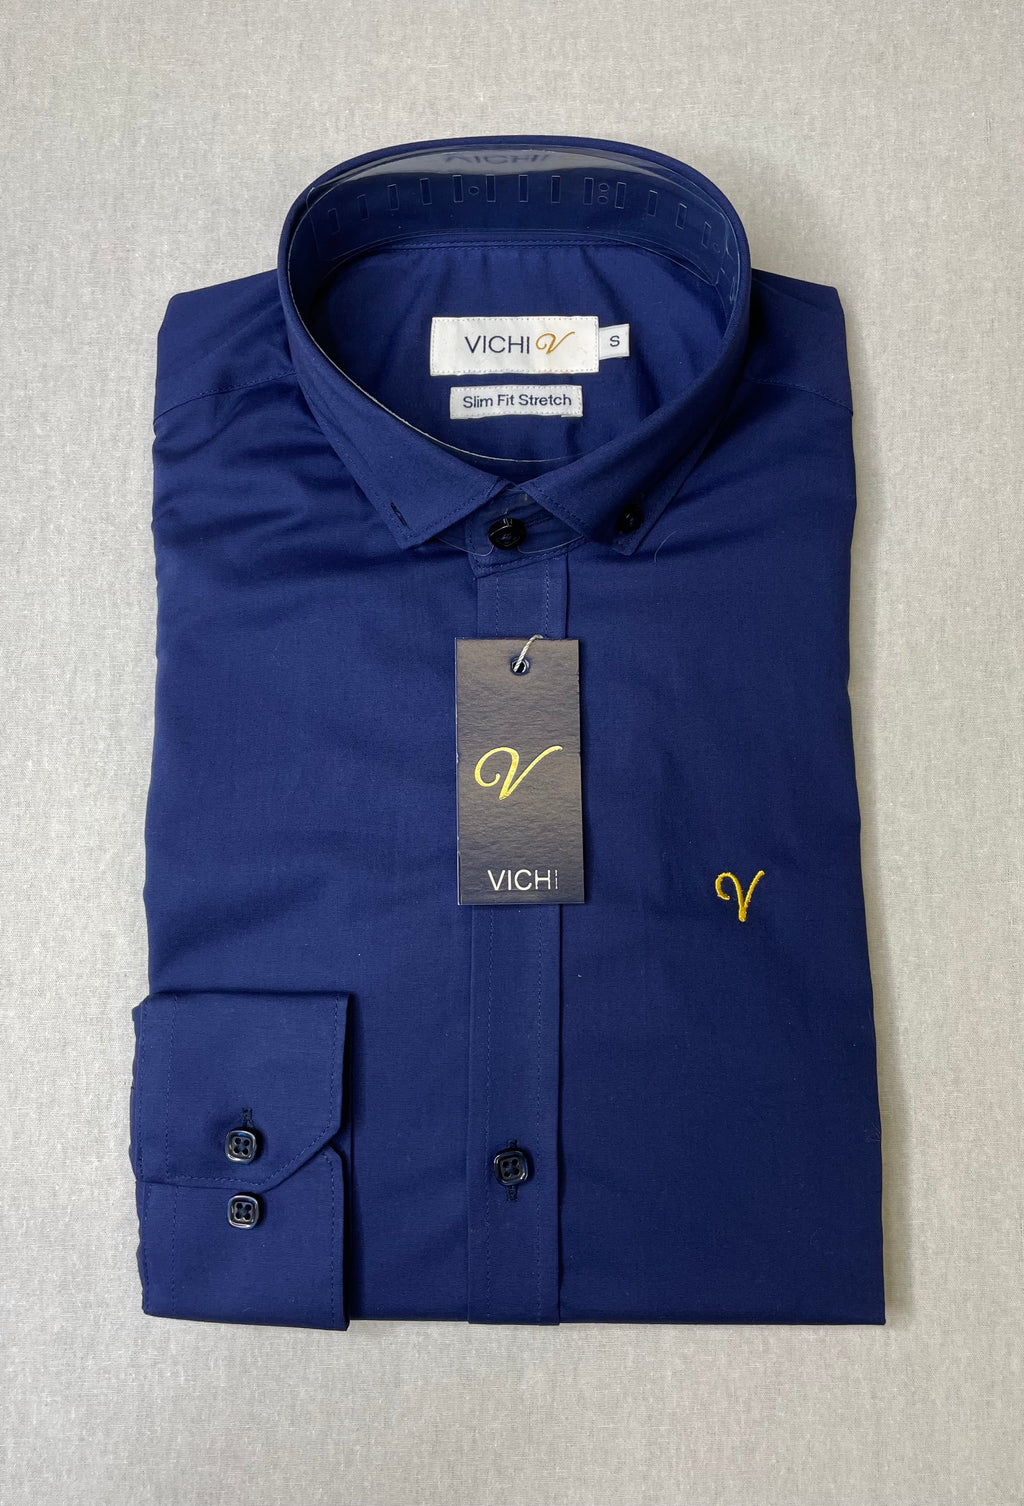 Vichi Slim Fit Stretch Shirt - Navy - JJ Donnelly